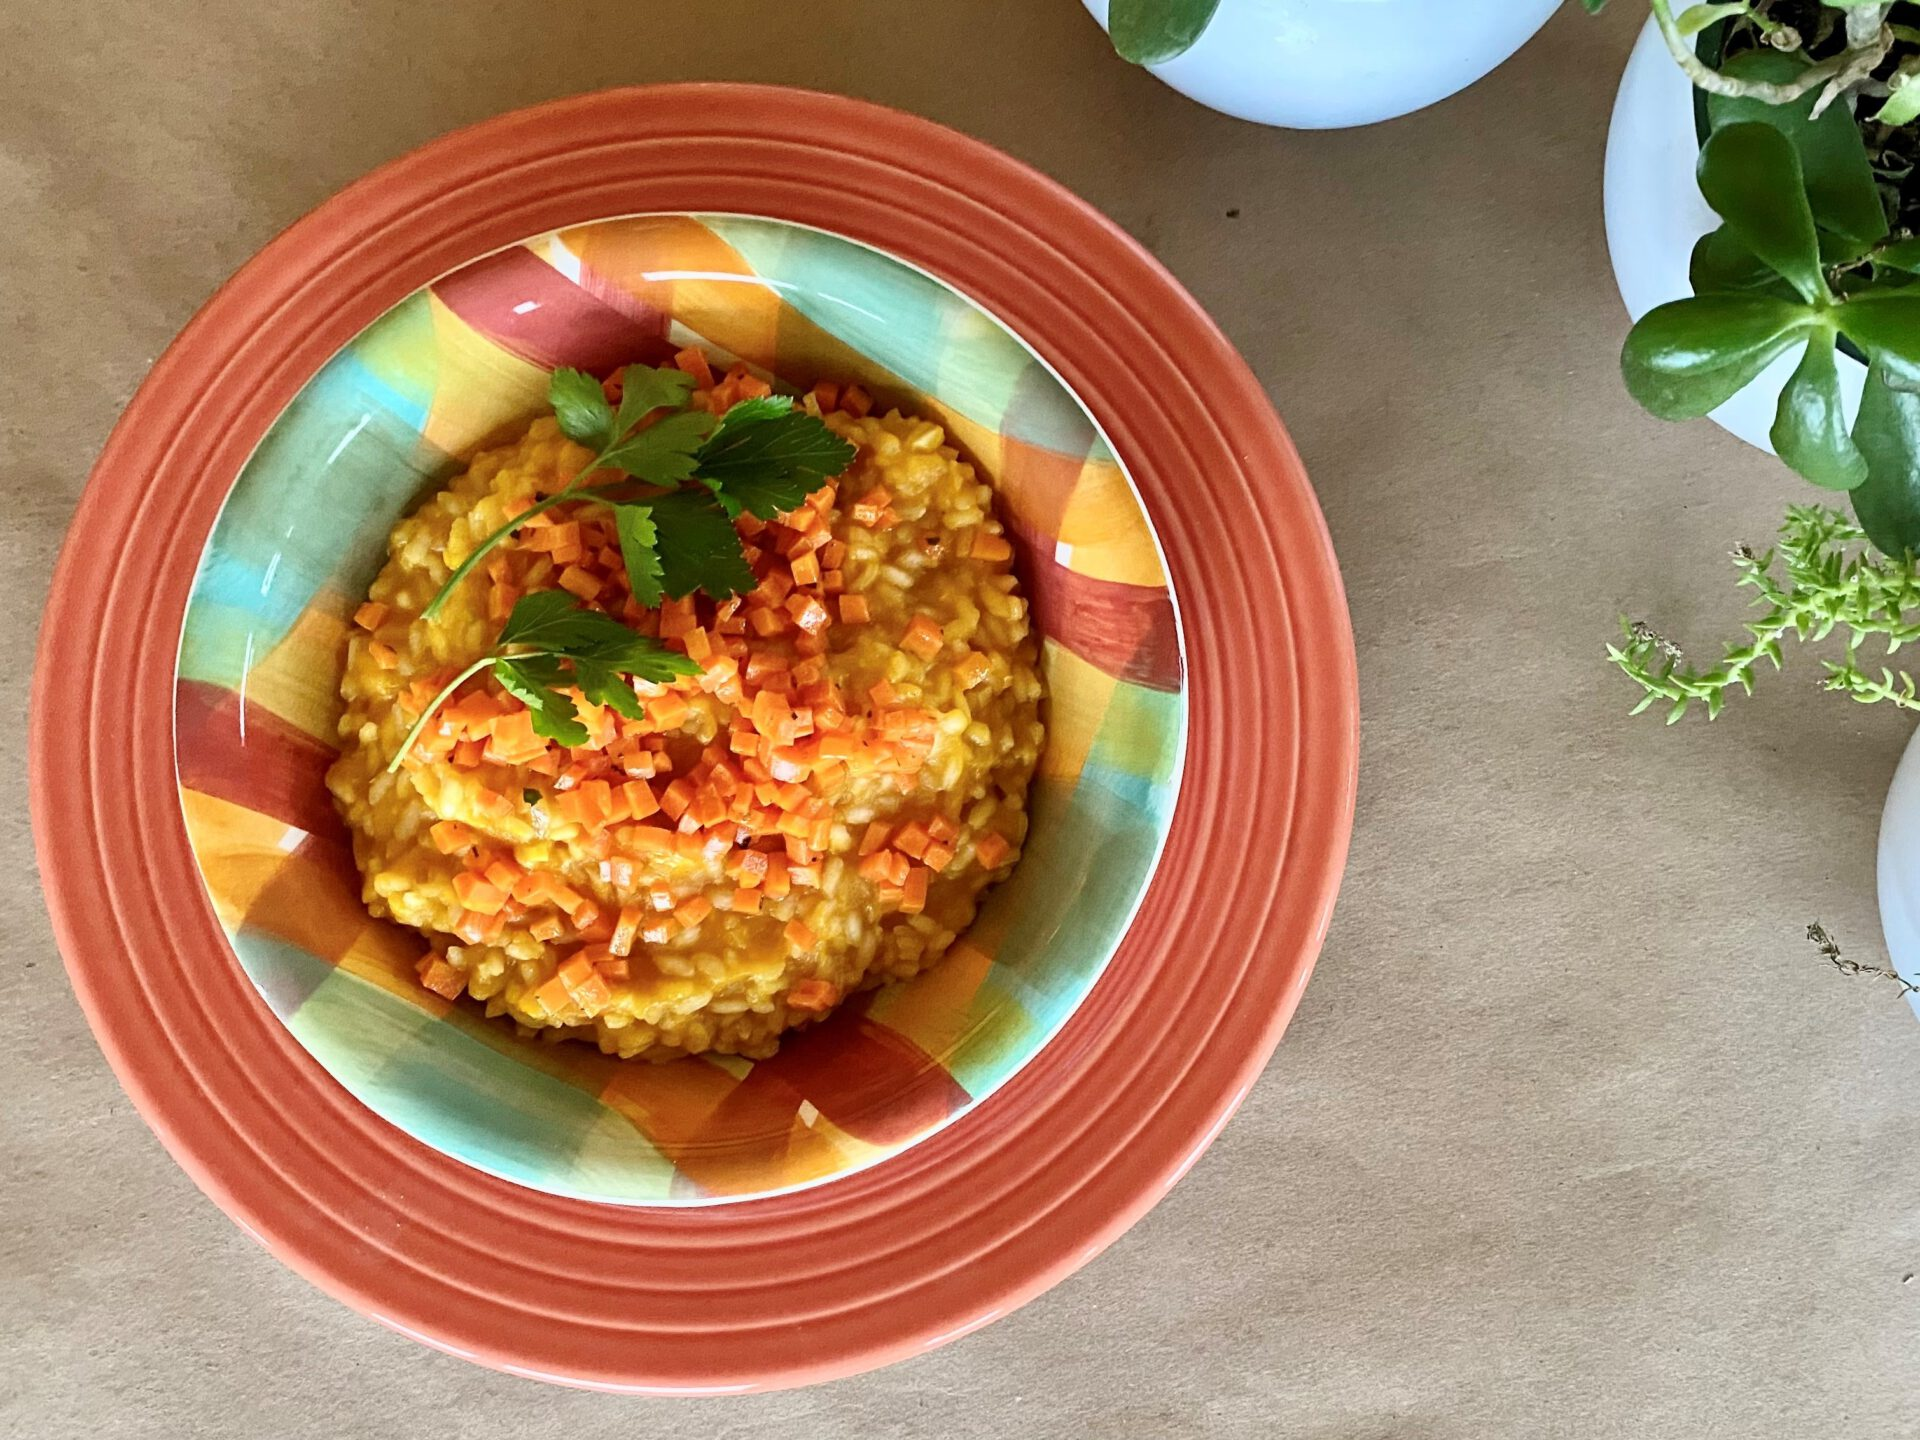 Carrot Risotto in bowl